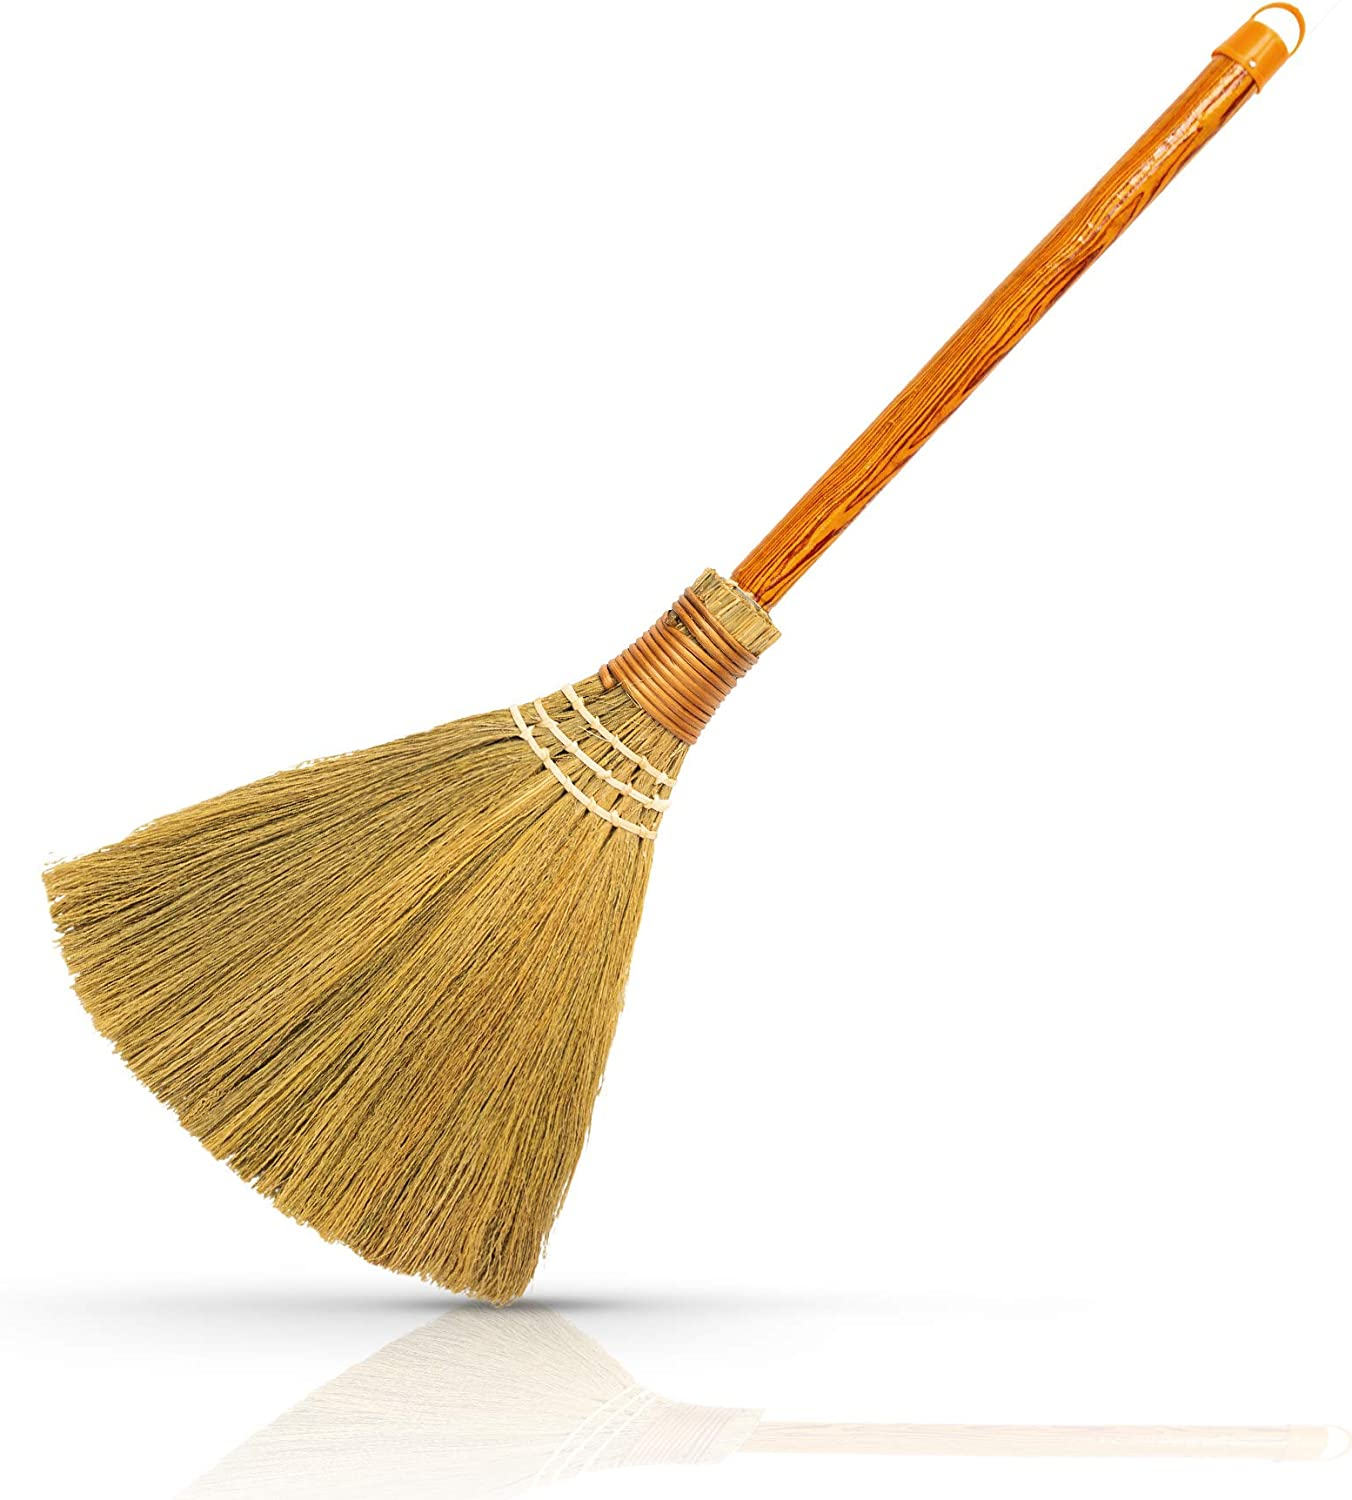 Natural Whisk Sweeping Hand Handle Broom - Vietnamese Straw Soft Broom for Cleaning - Decoration Items - Indoor - Outdoor - 7.87'' Width, 24.4